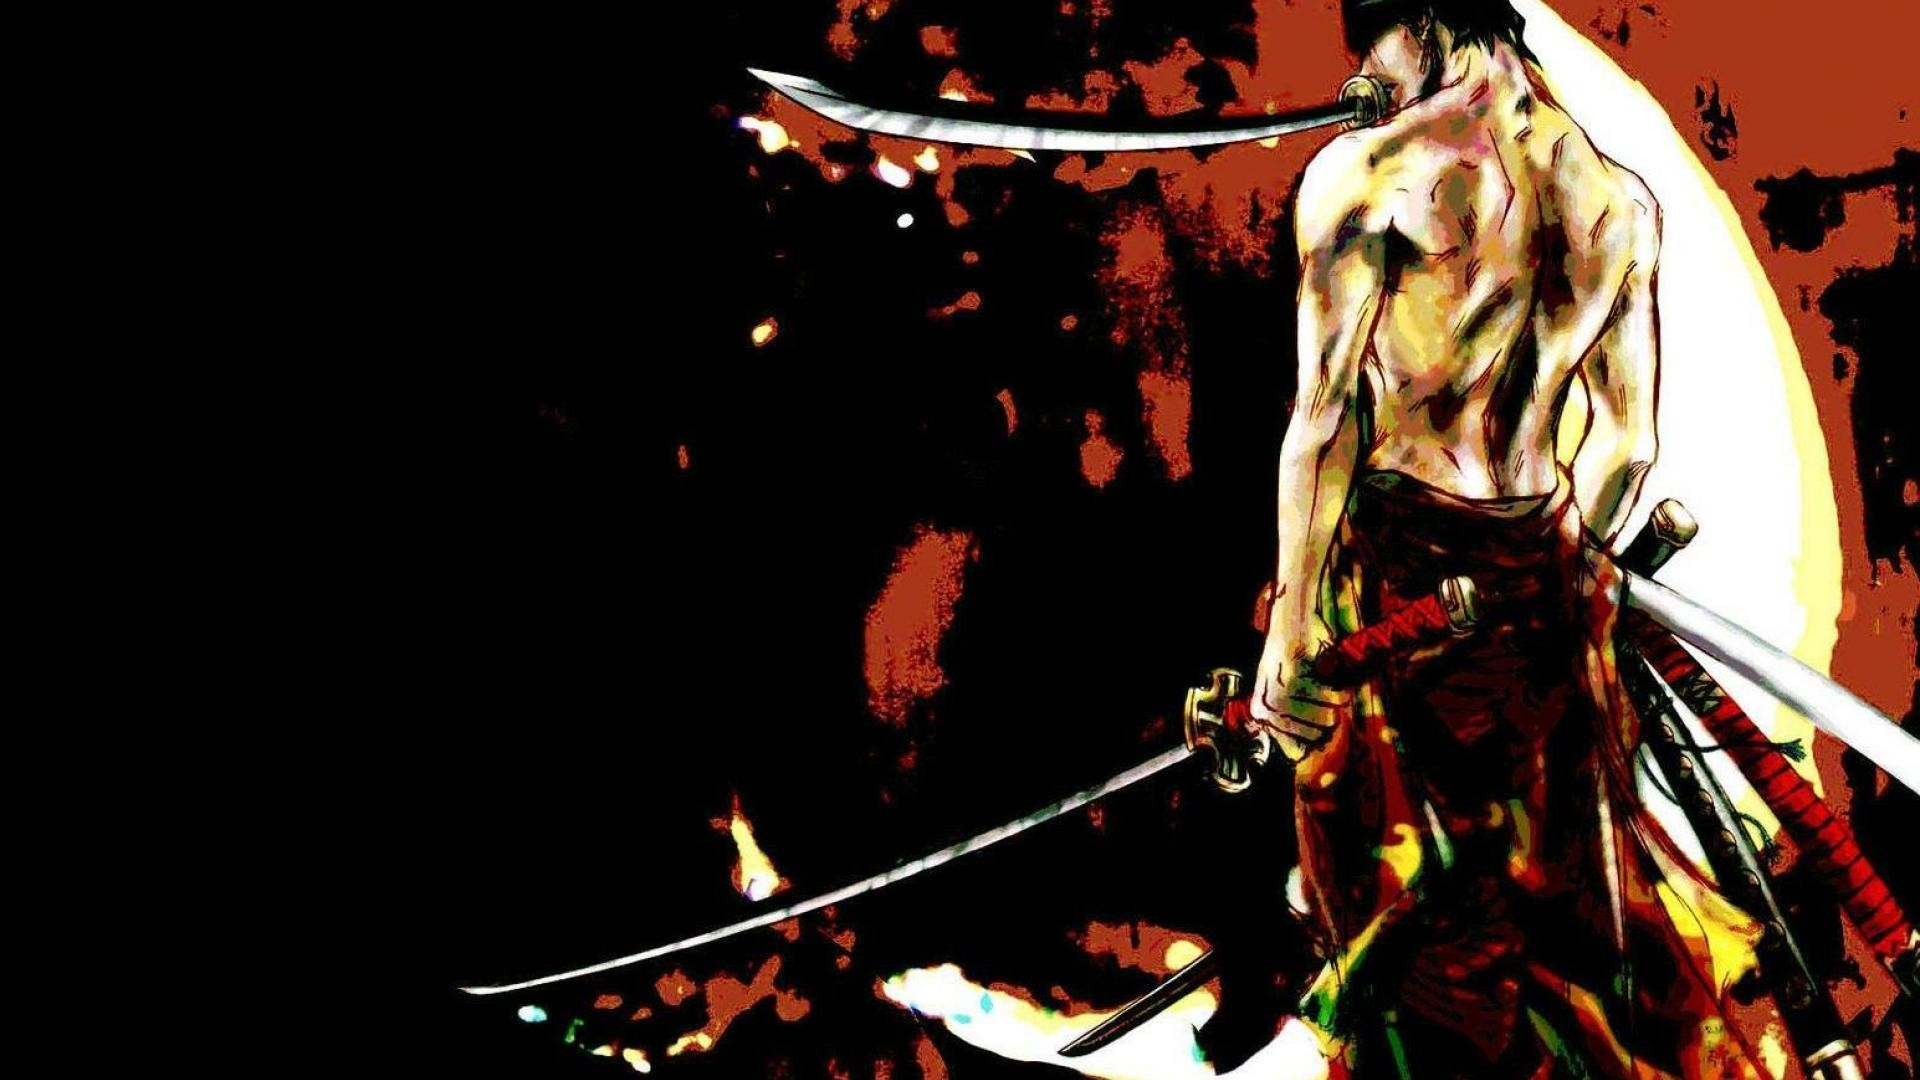 1920x1080 Images For Gt One Piece Wallpaper Zoro Roronoa Zoro Wallpaper Iphone   Live New World Widescreen